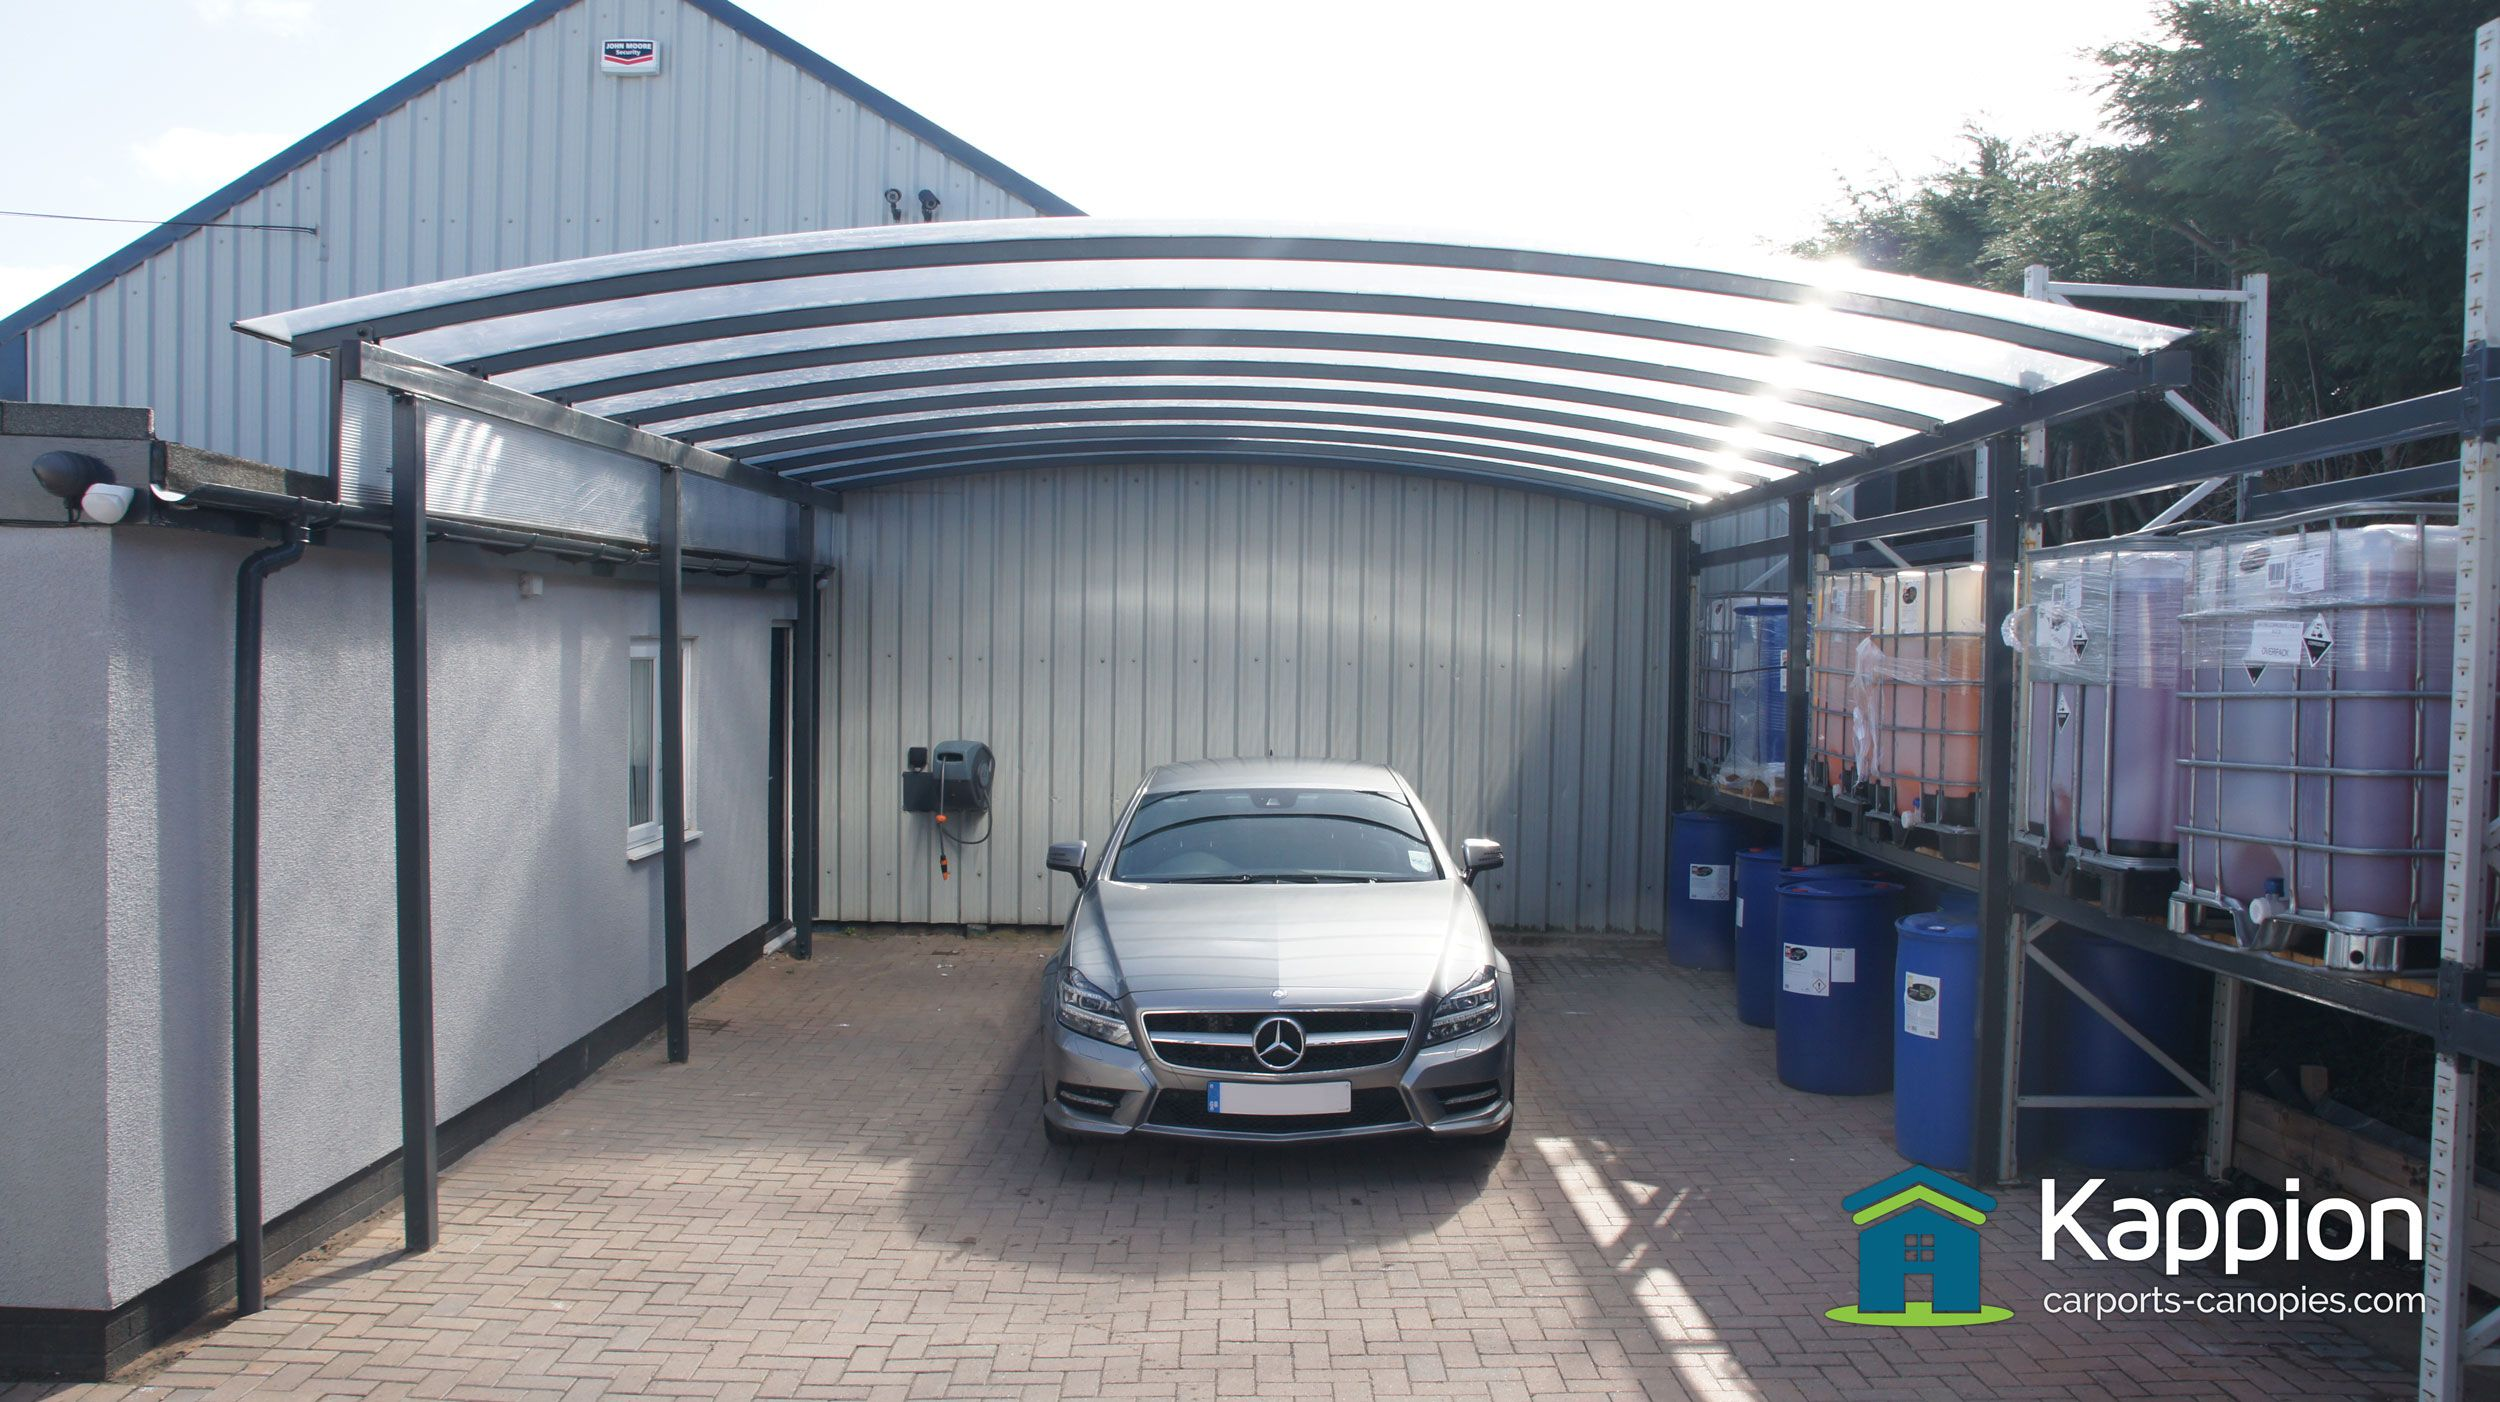 The Ultimate car detailing carport canopy protection. & The Ultimate car detailing carport canopy protection ...